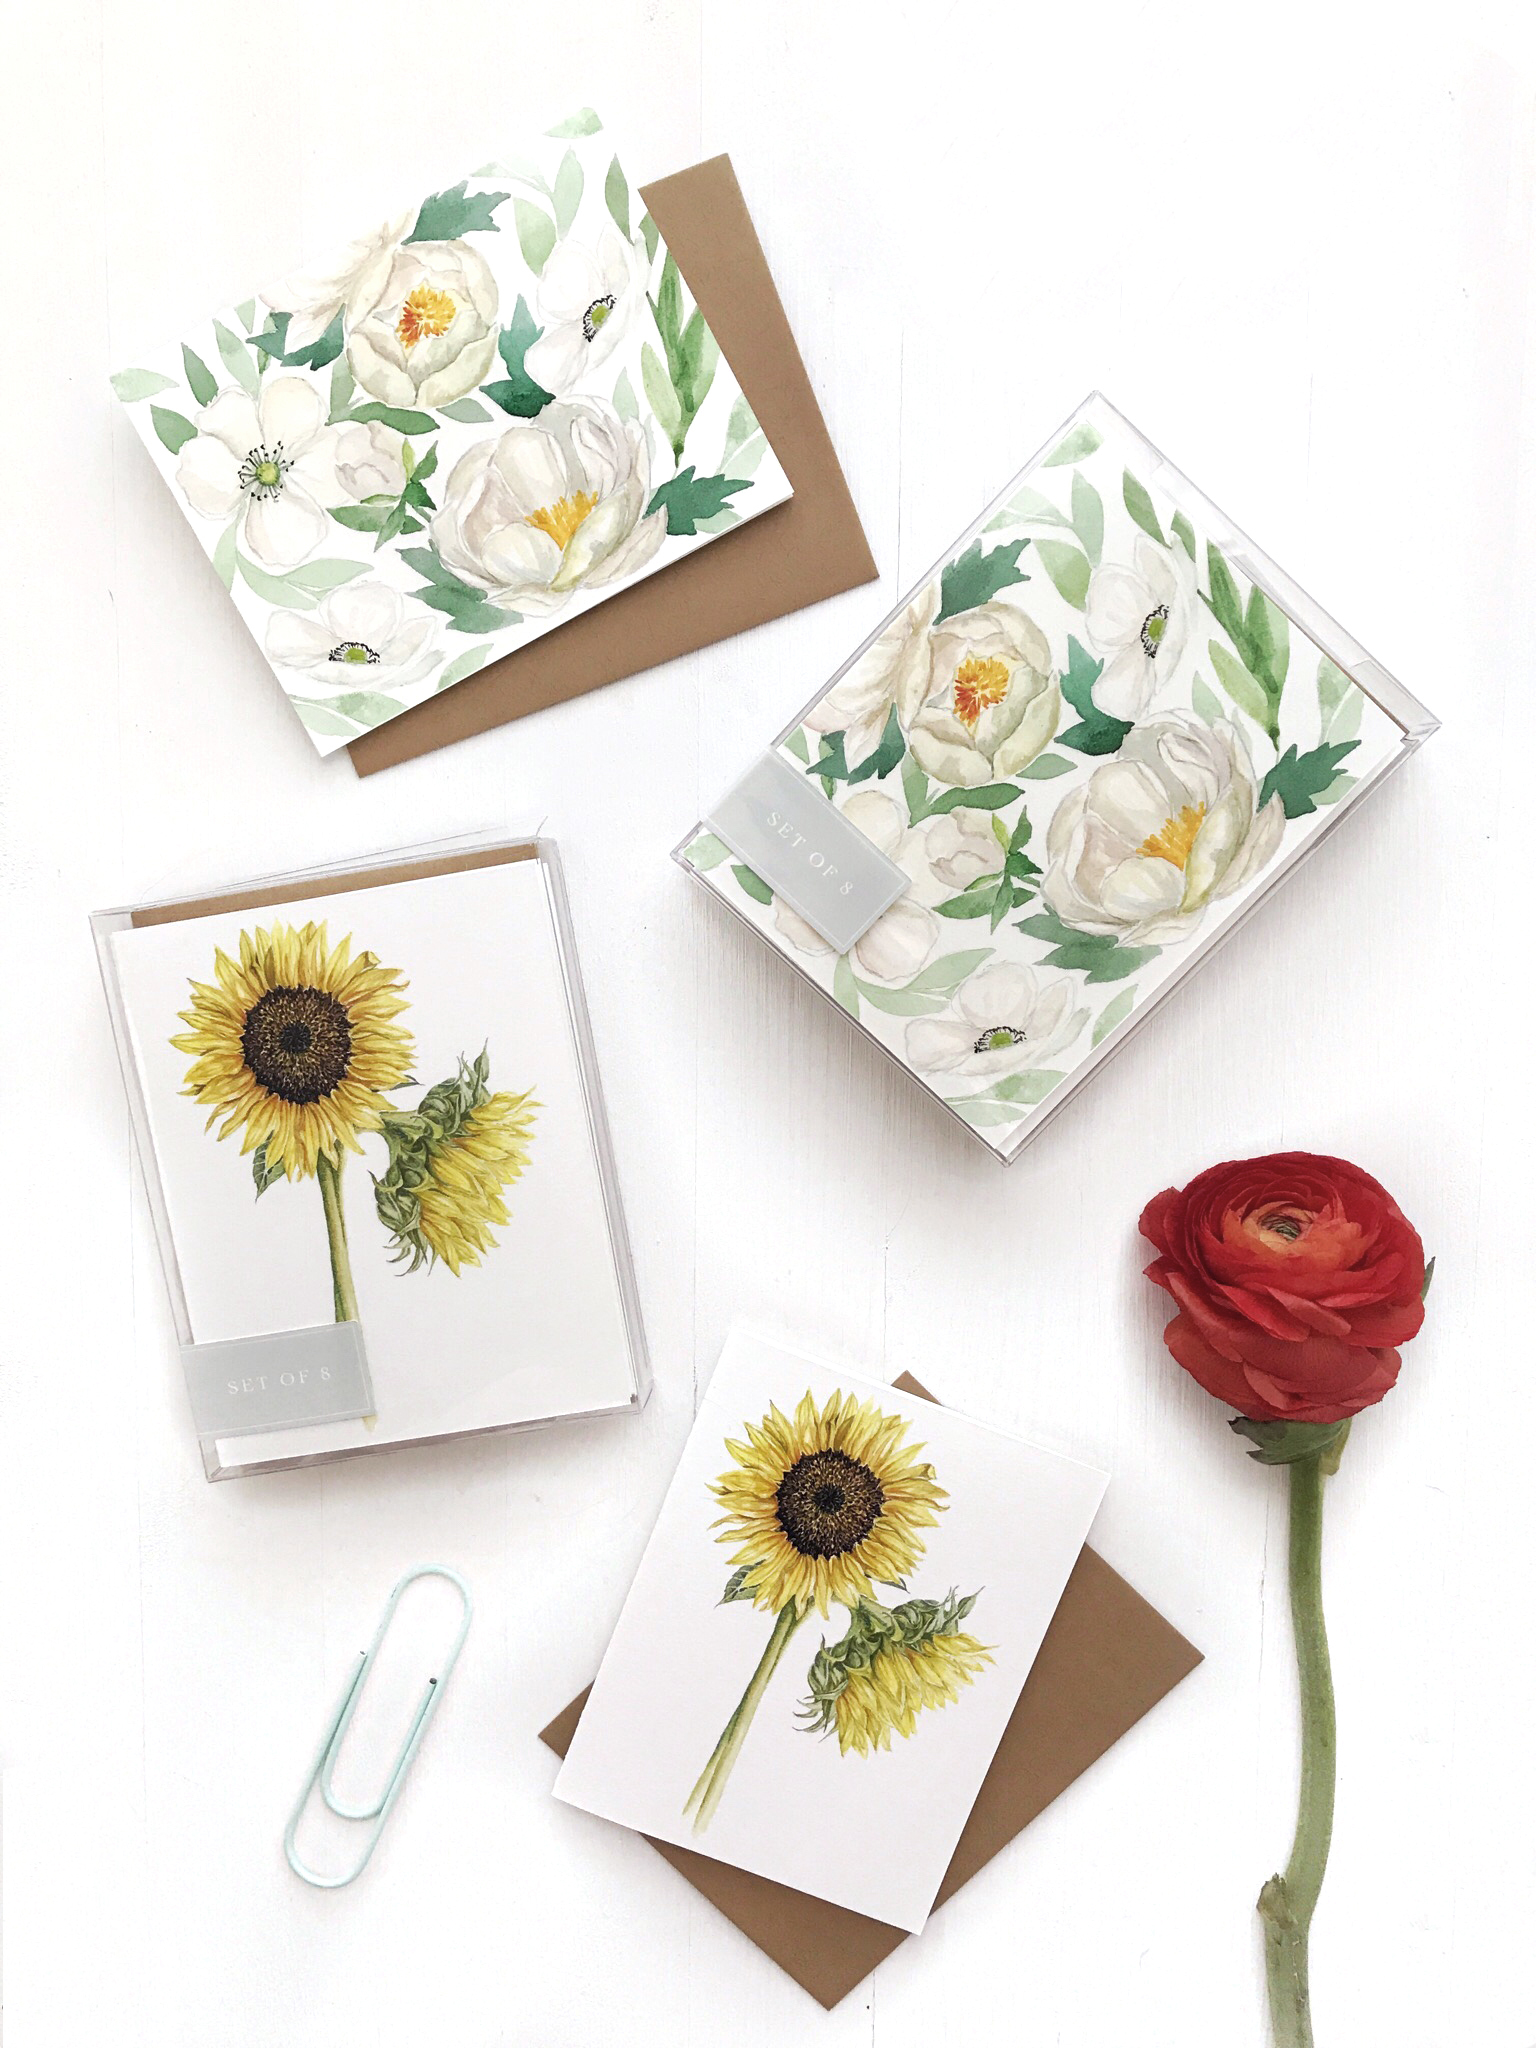 Stationery cards that I designed and have available in my shop. They can be purchased as single or box sets of 8.